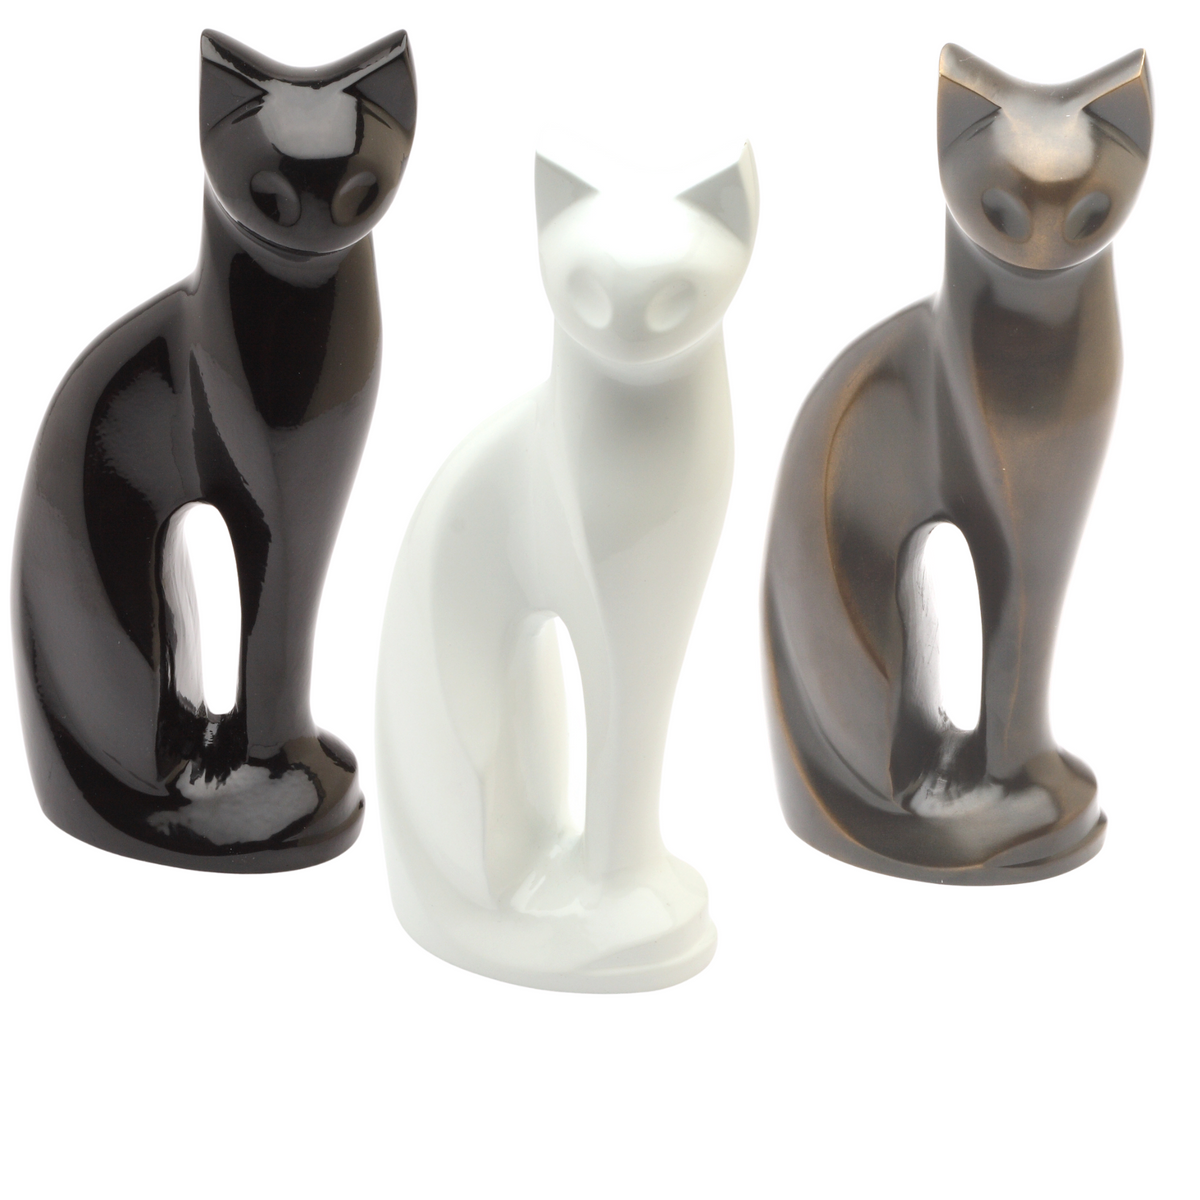 Figurine Cremation Ashes Cat Urn - Urns UK